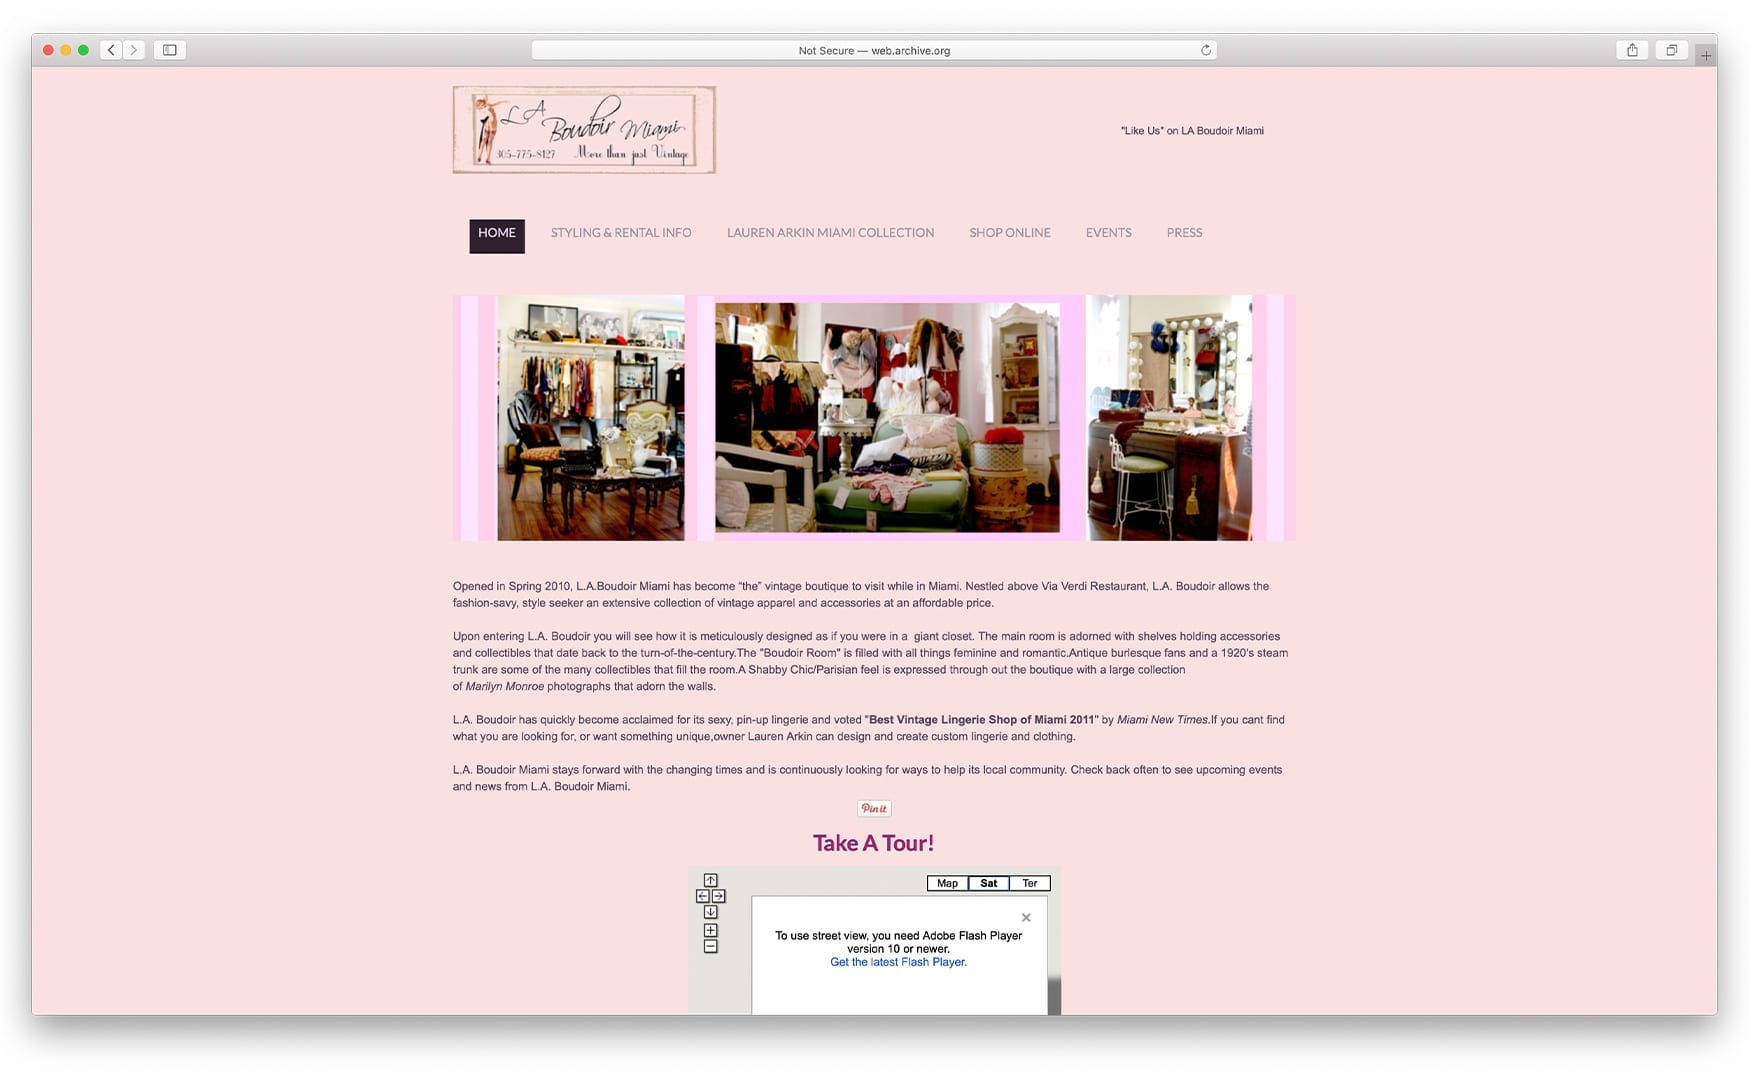 Previous Website Design - laboudoirmiami.com - Online Store Built with bizProWeb | Miami